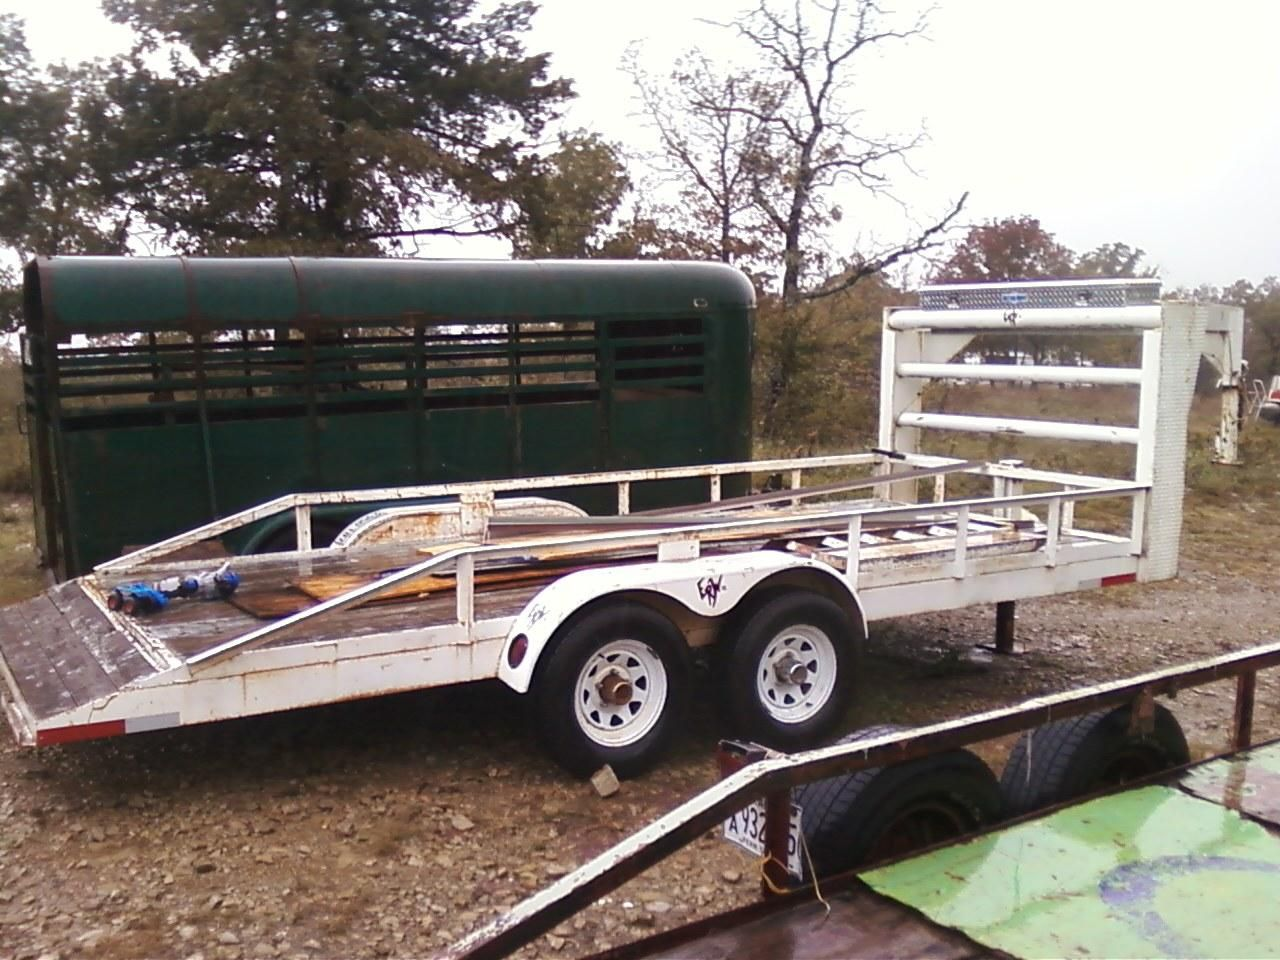 16ft horse trailer for sale $800 and 18ft heavy duty gooseneck car ...